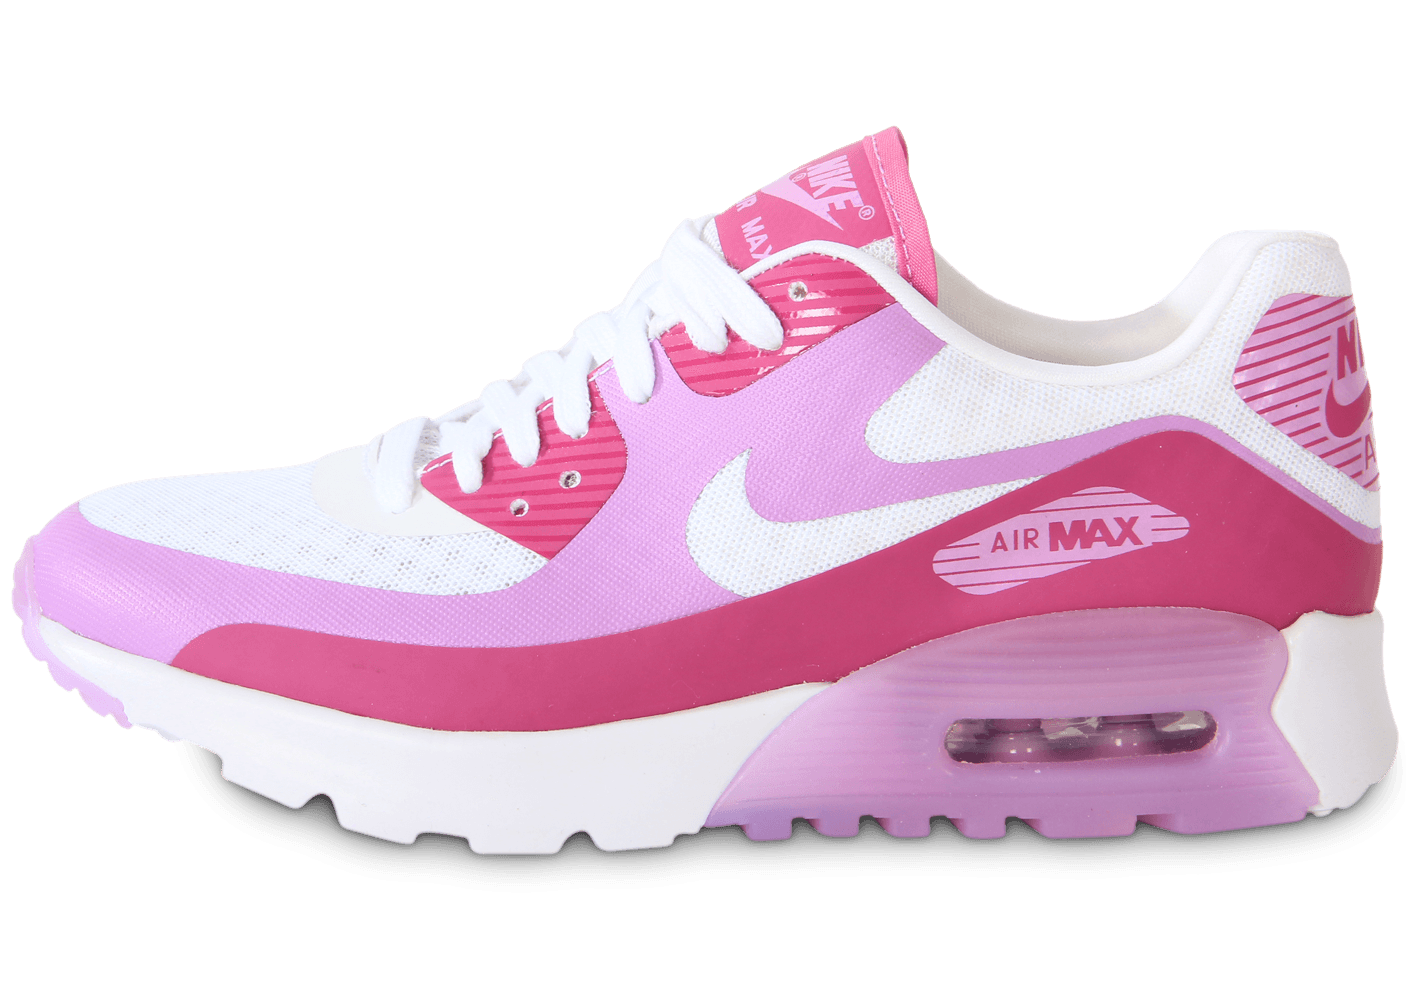 Nike Air Max Blanche Et Rose